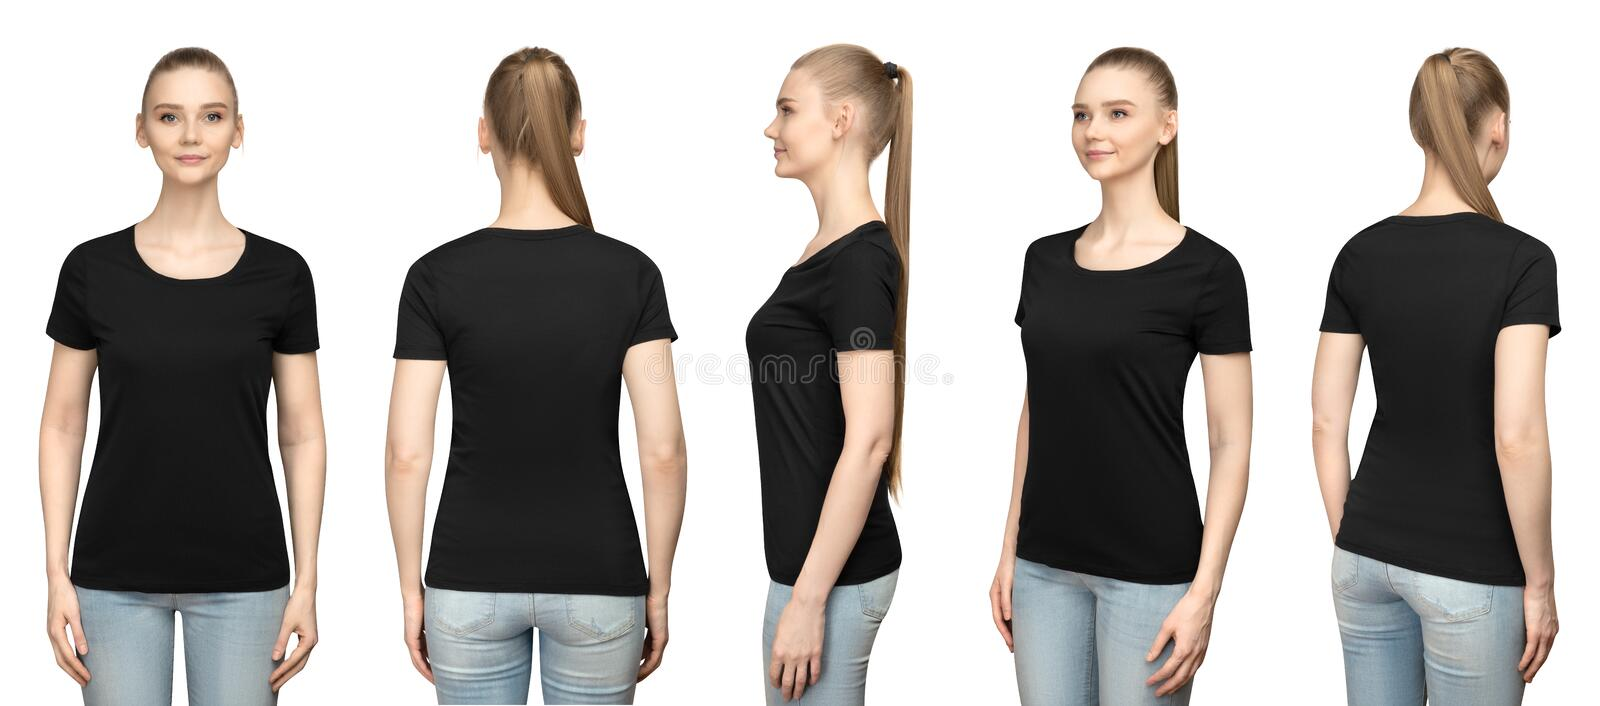 Set promo pose girl in blank black tshirt mockup design for print and concept template young woman in T-shirt isolated stock photos